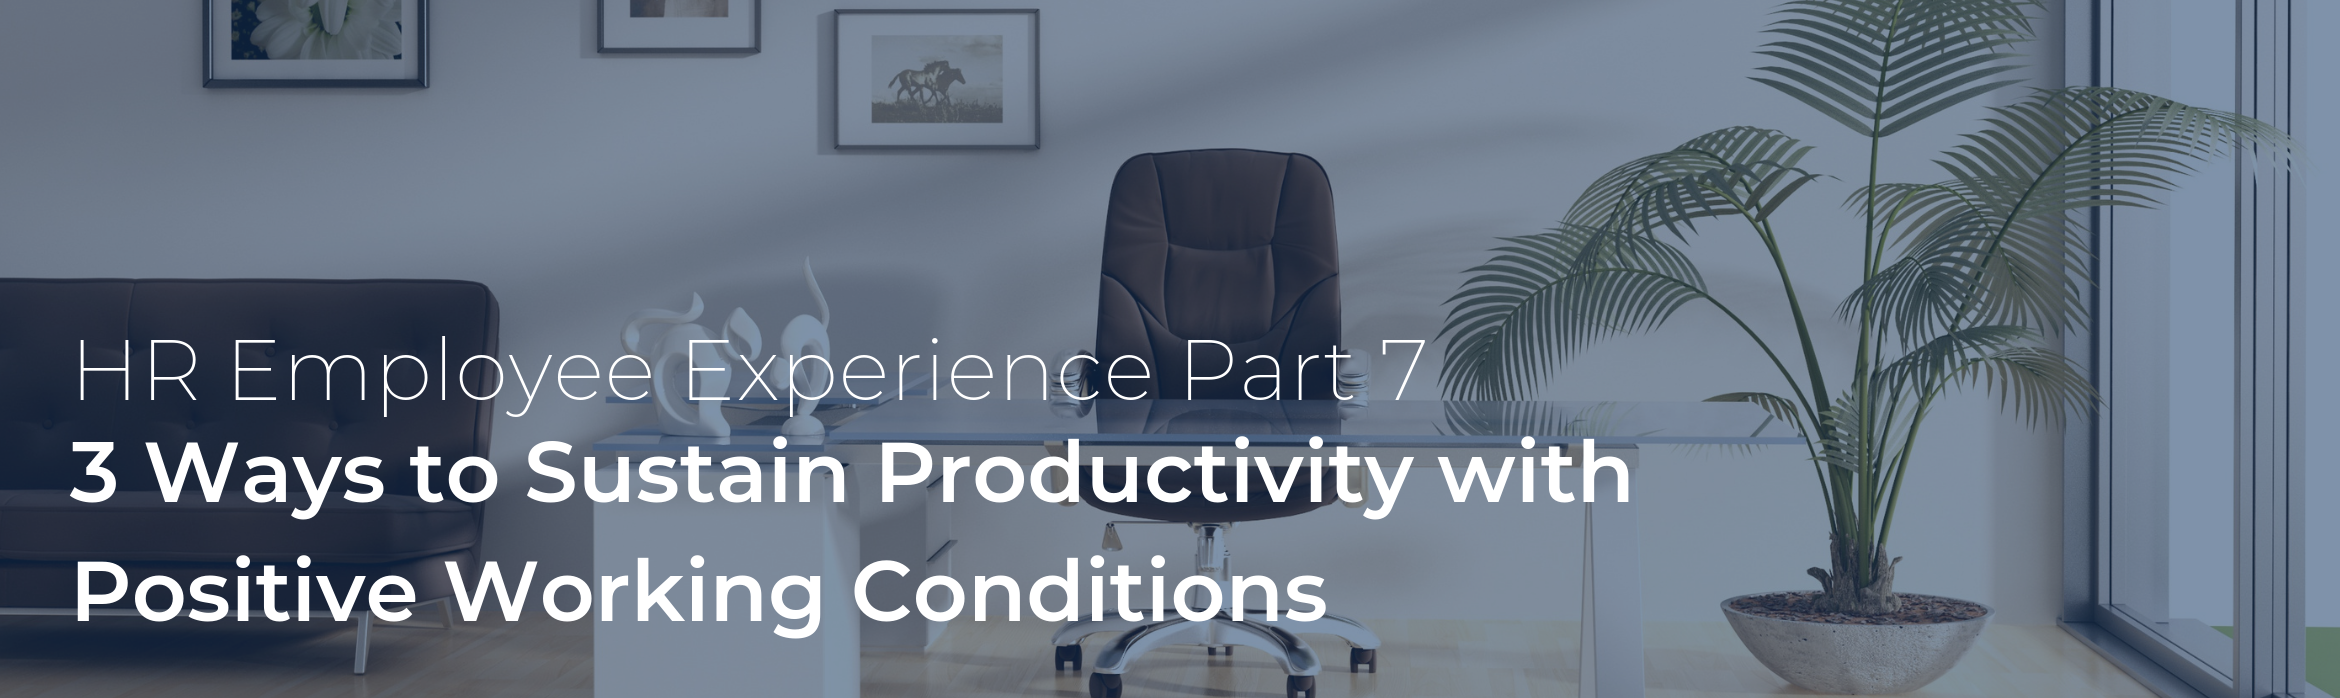 3 Ways to Sustain Productivity with Positive Working Conditions